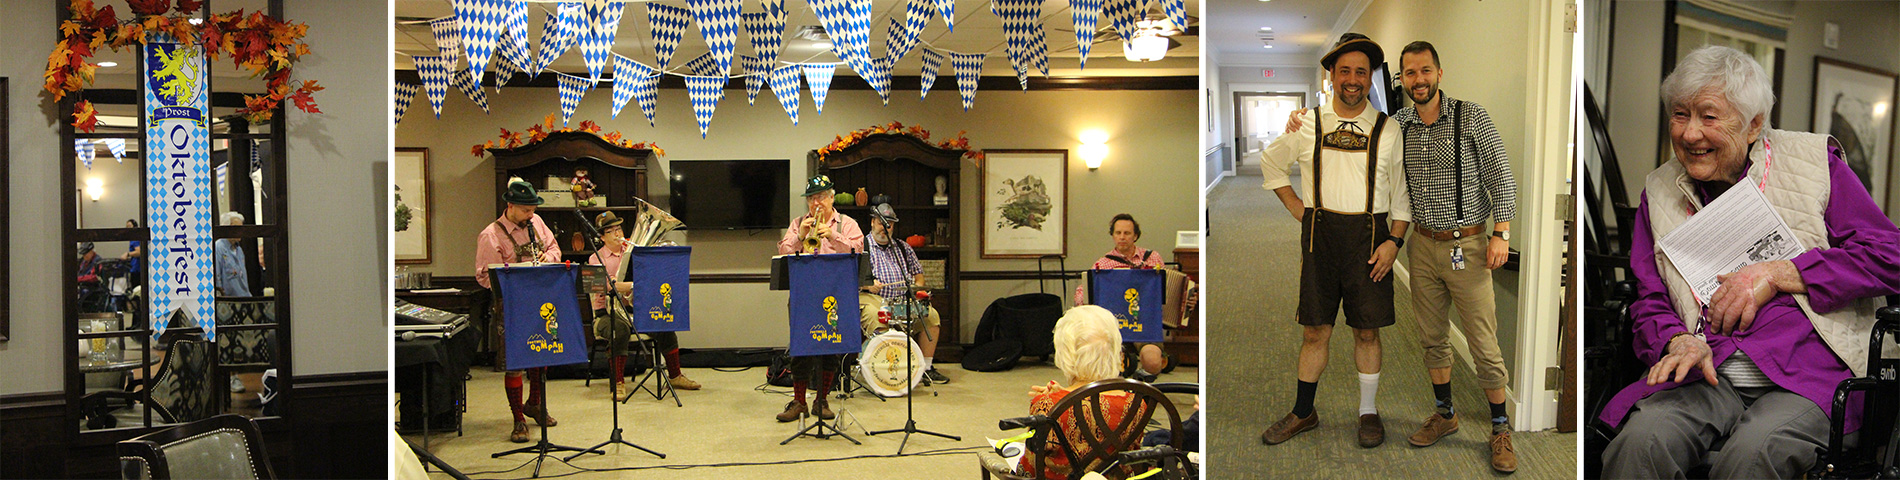 Oktoberfest at Wellmore of Tega Cay